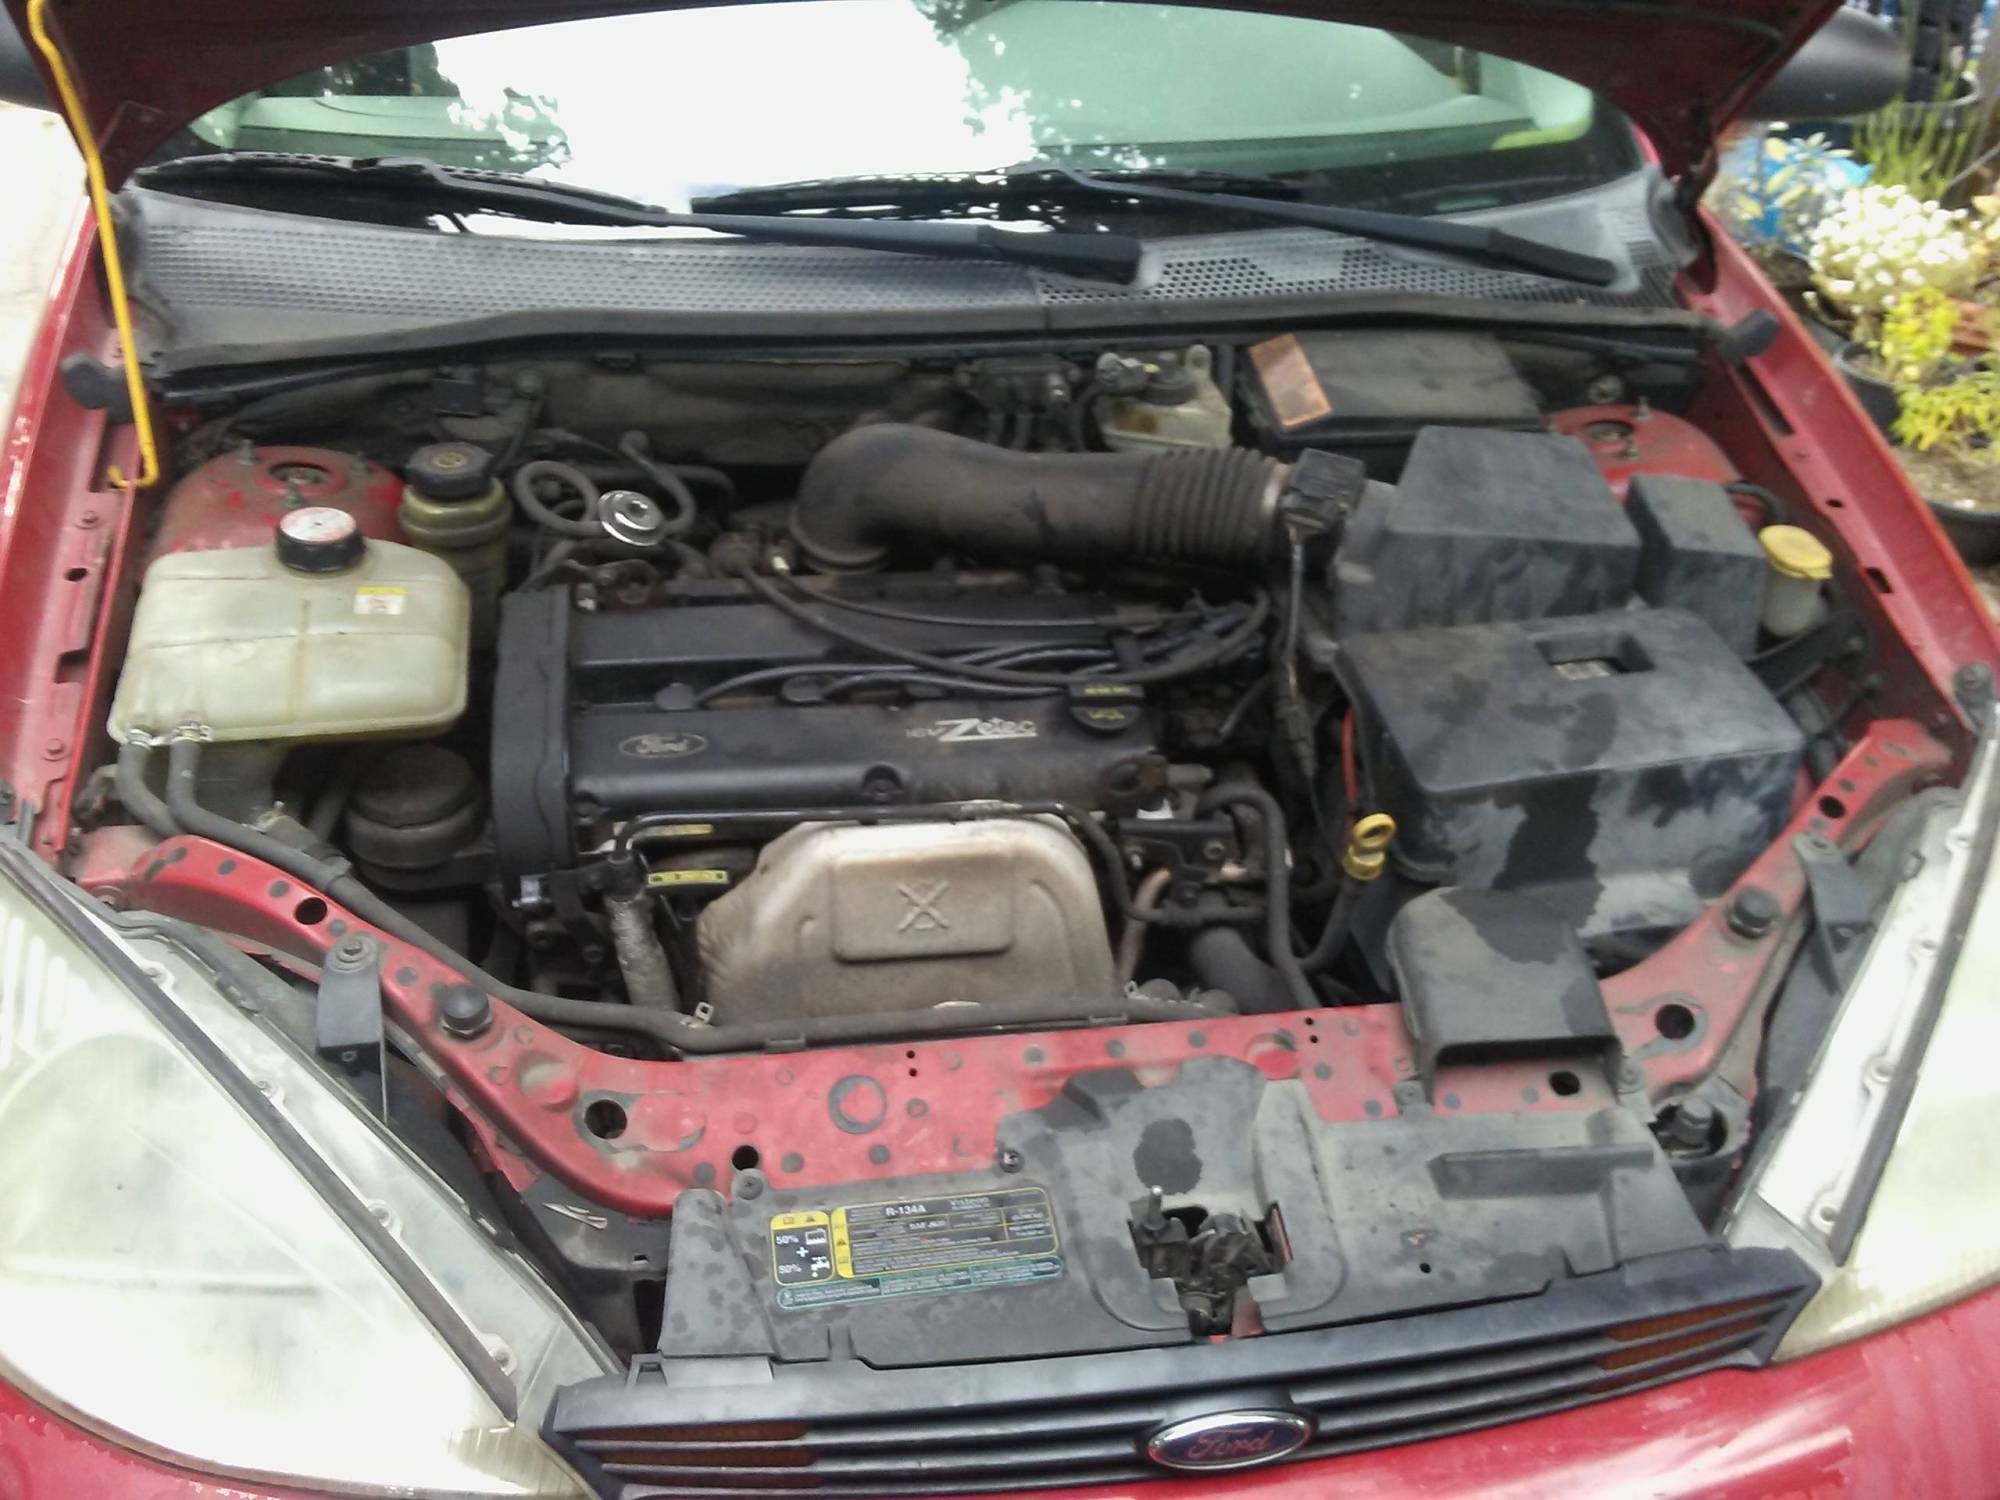 hight resolution of photo of dirty ford focus engine bay